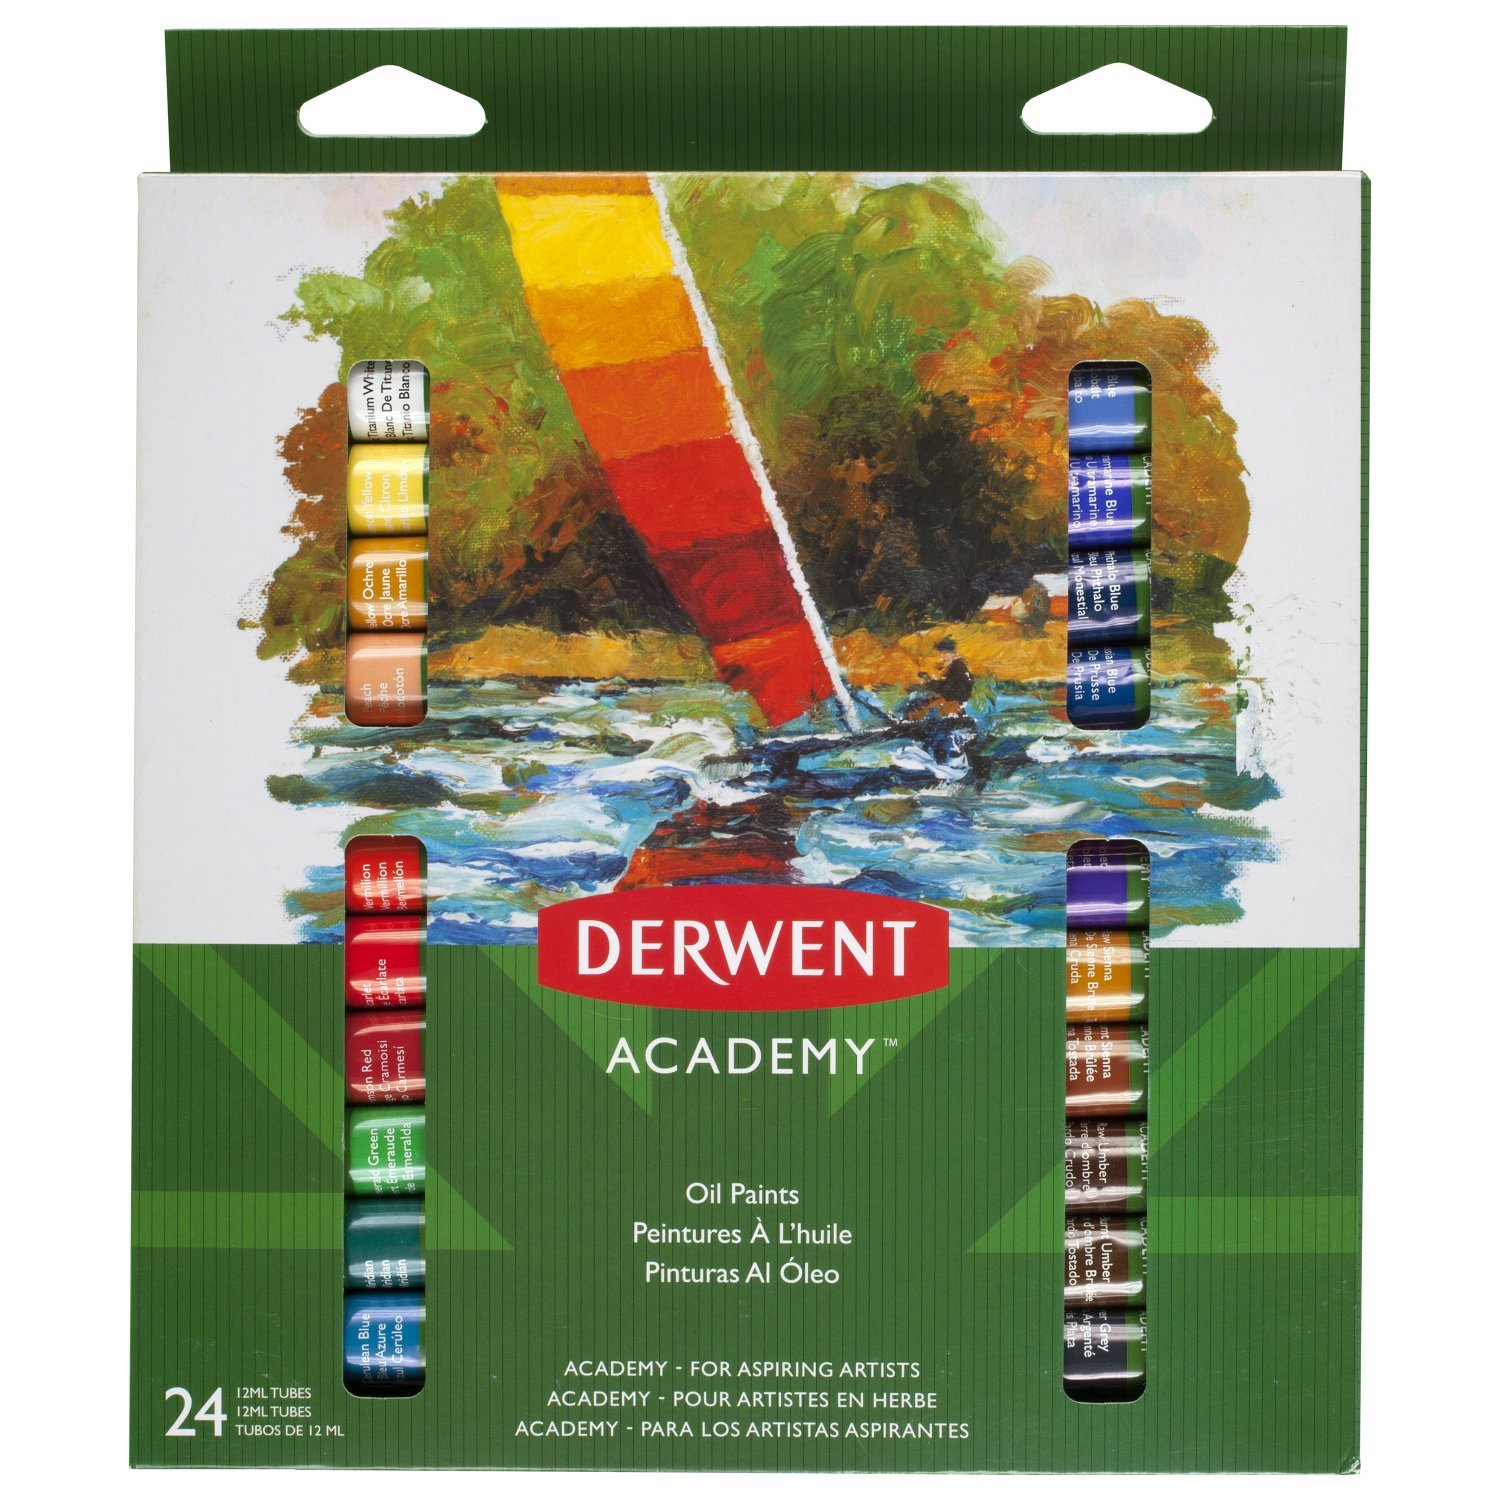 Derwent Academy Oil Paints, 12 ml, Set of 24, High Quality, 98224